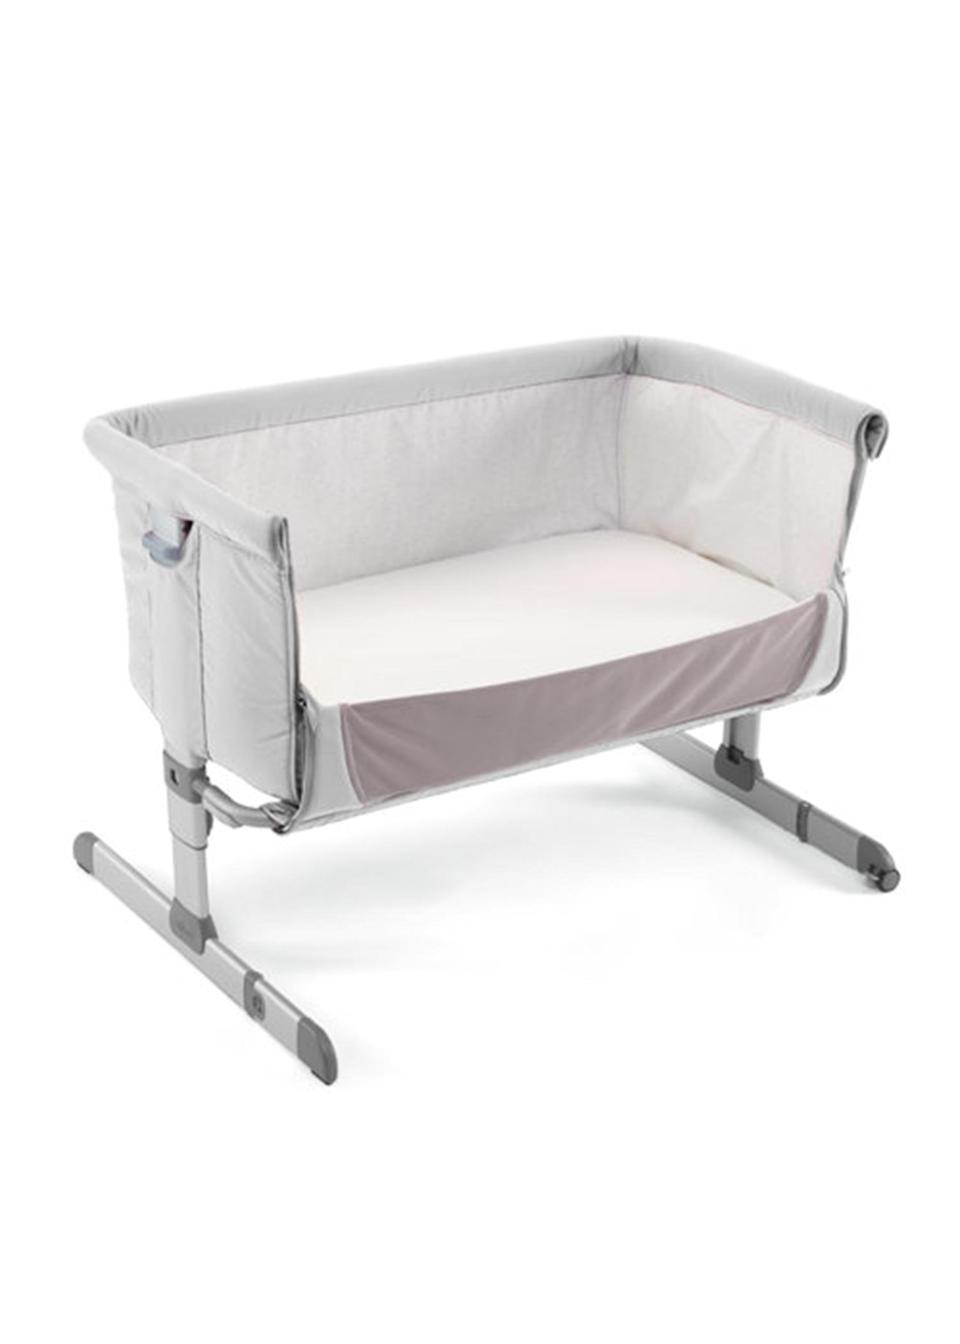 """<p>Numerous parents rave about this bedside cot – and for good reason. The original side-sleeping crib, it allows you to sleep next to your newborn without actually co-sleeping, making those nightime feeds that much easier. <em><a href=""""https://www.mothercare.com/bedside-cribs/chicco-next2me-side-sleeping-crib---light-grey-exclusive-to-mothercare/251446.html"""" rel=""""nofollow noopener"""" target=""""_blank"""" data-ylk=""""slk:Buy here"""" class=""""link rapid-noclick-resp"""">Buy here</a></em>. </p>"""